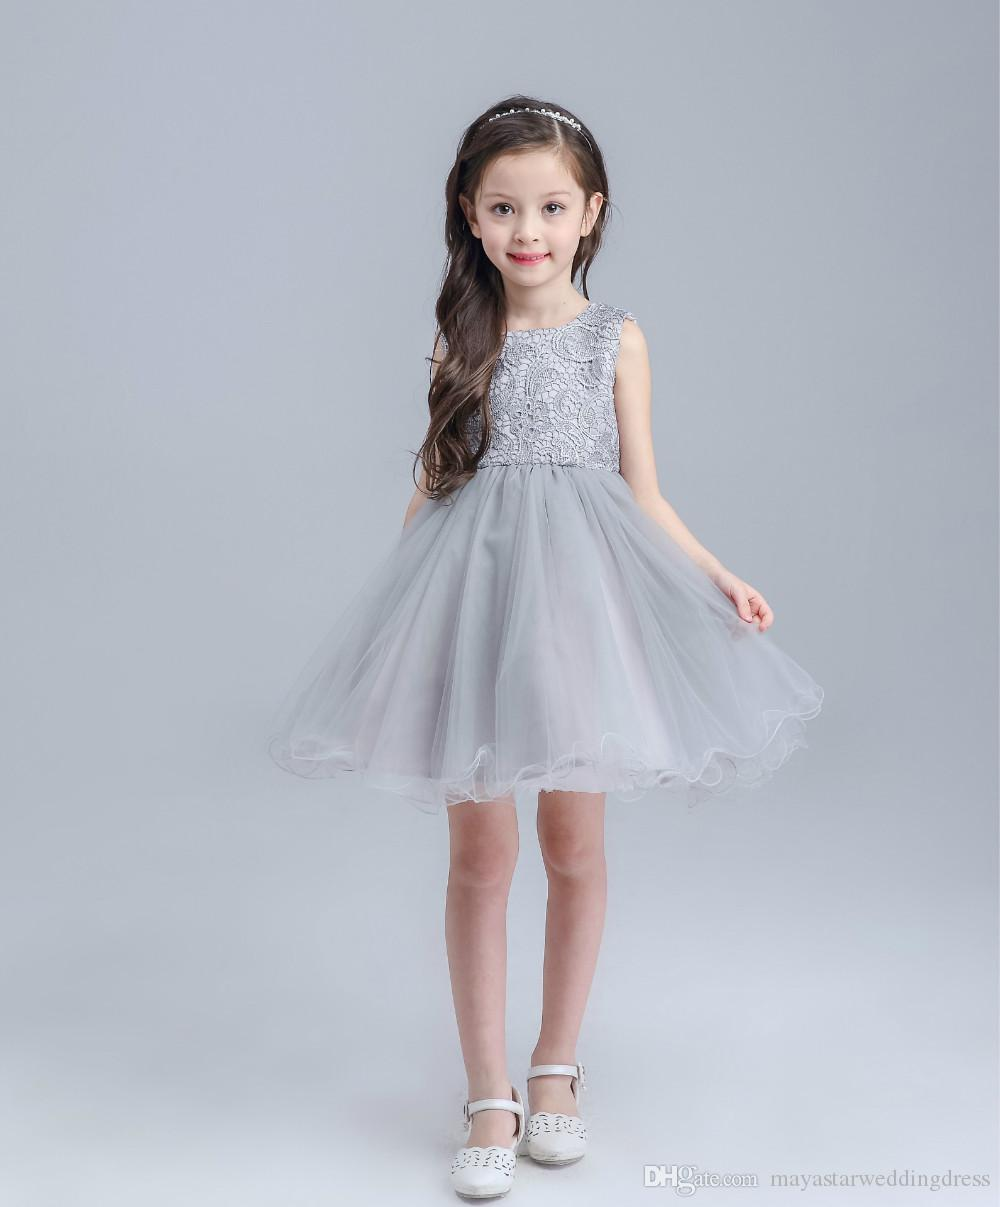 2018 Ball Gown Little Girls Birthday Party Dress With Beads Beauty ...